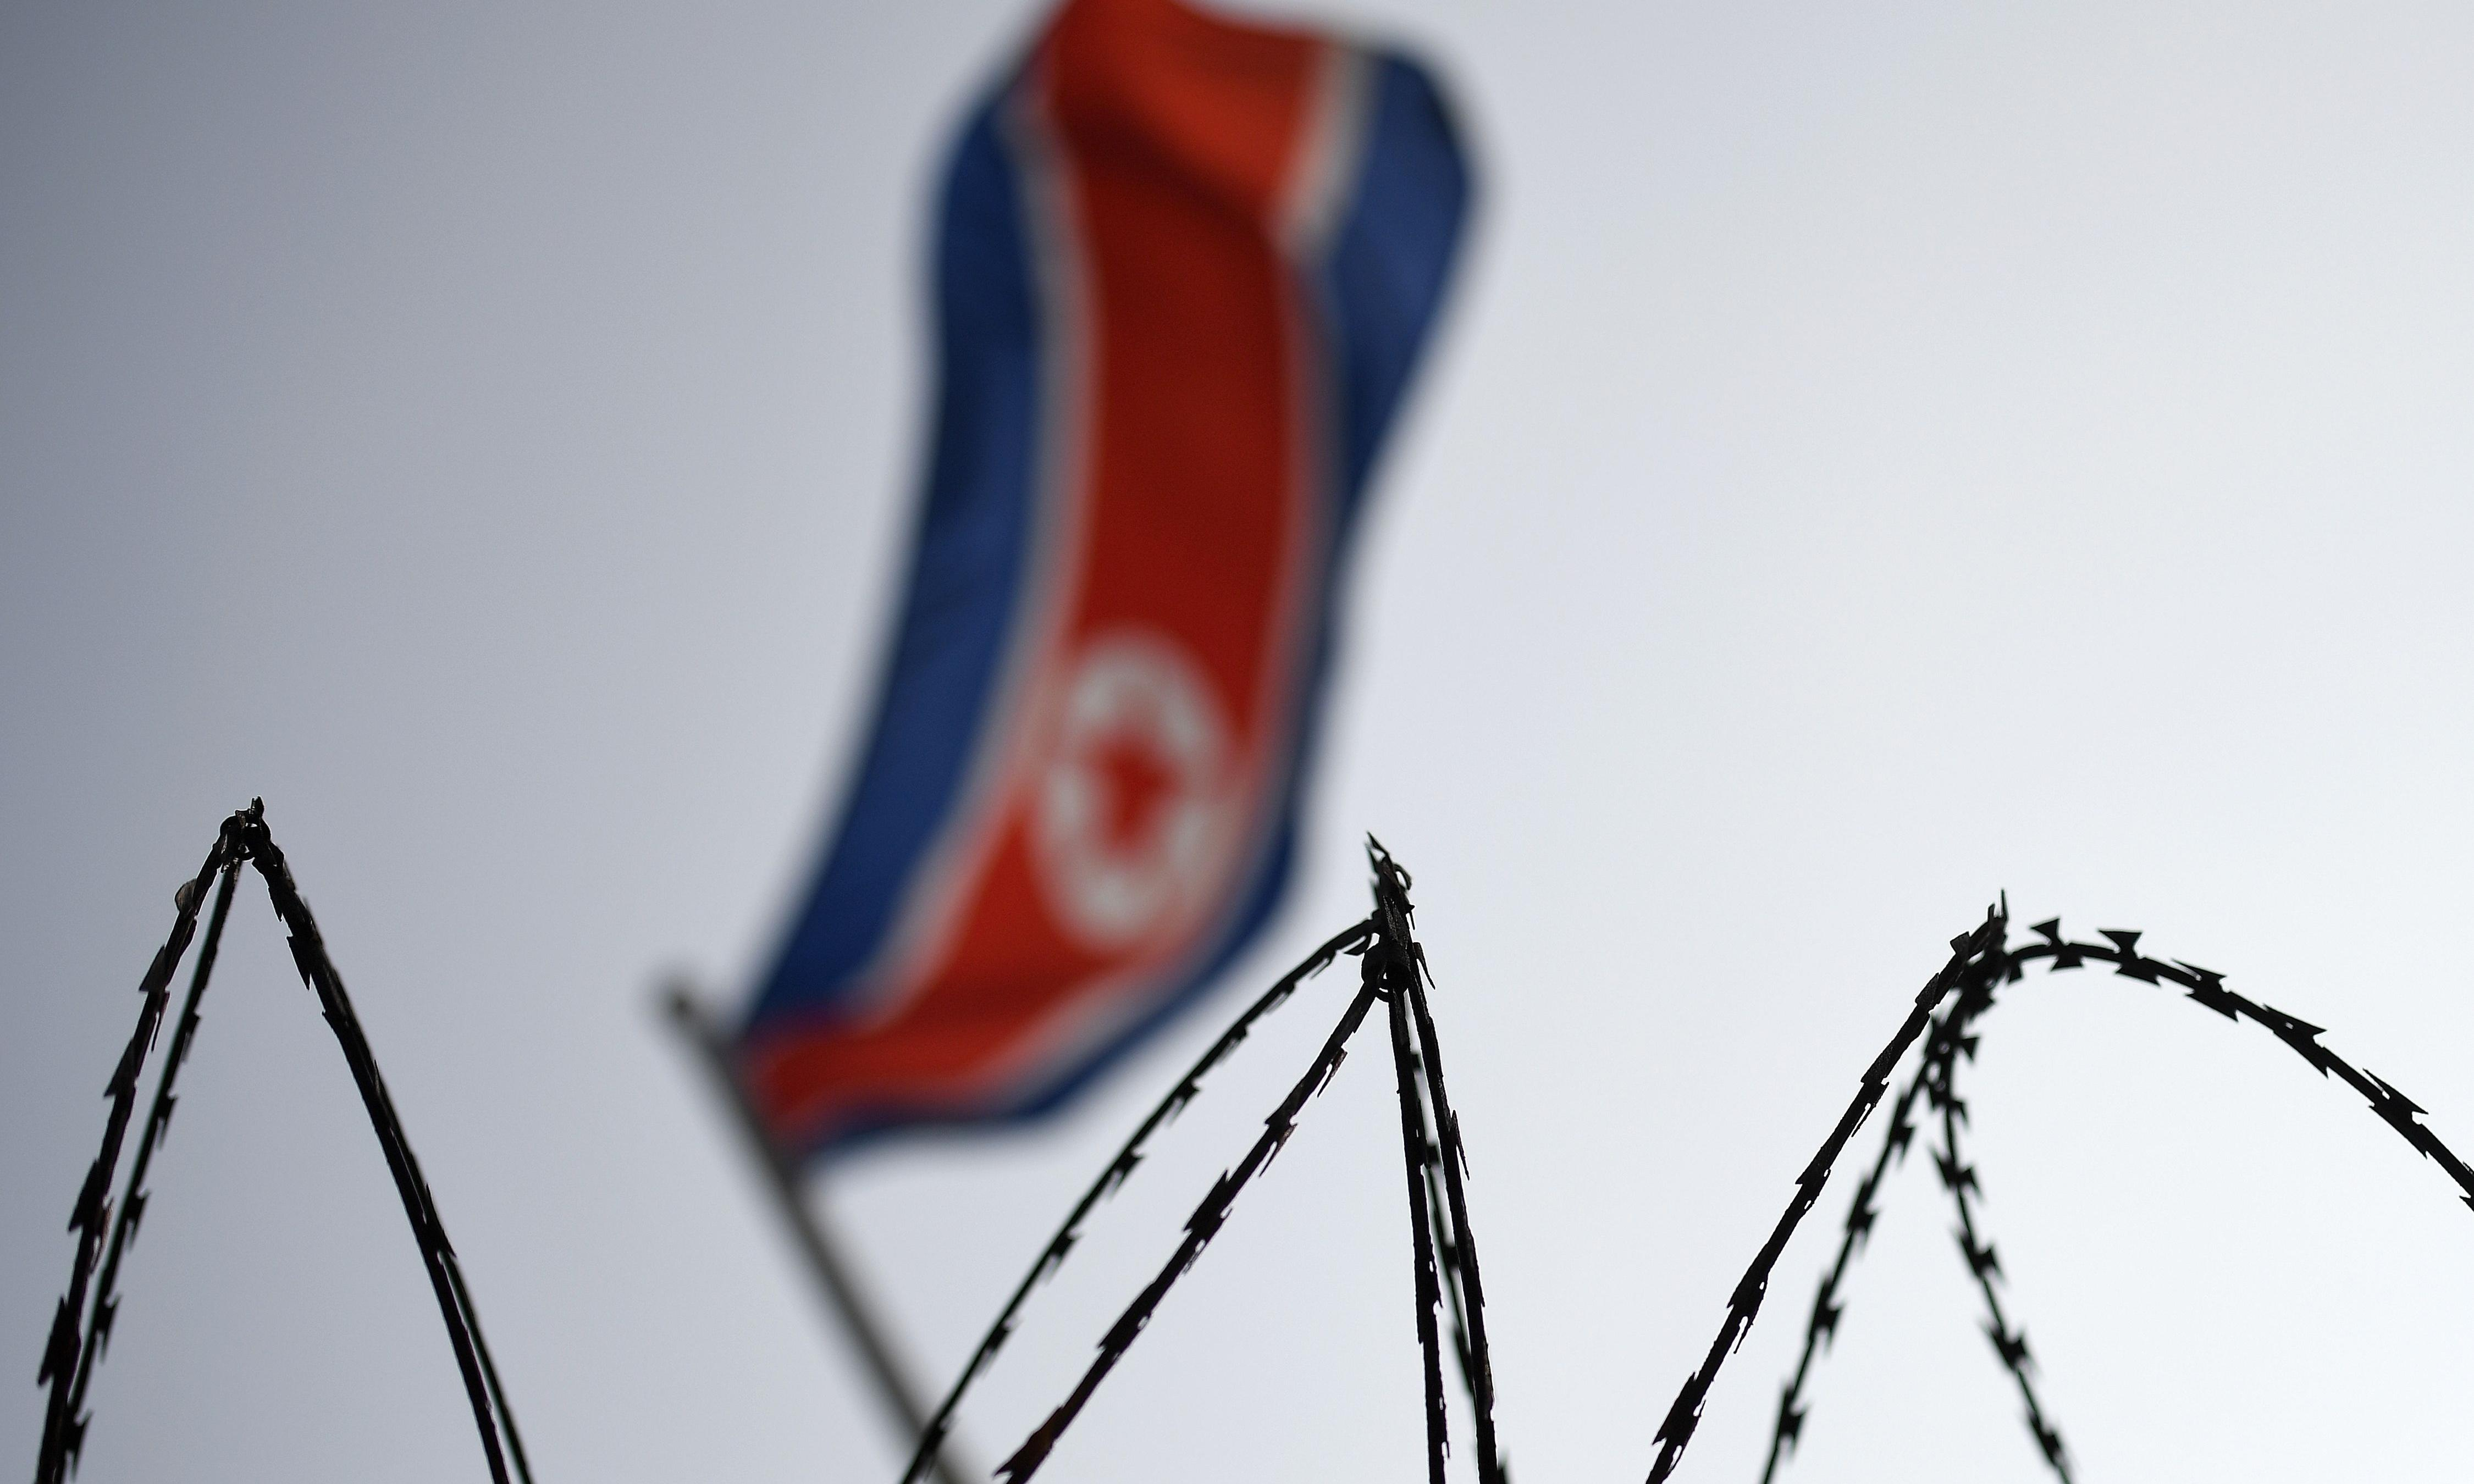 'They considered us toys': North Korean women reveal extent of sexual violence